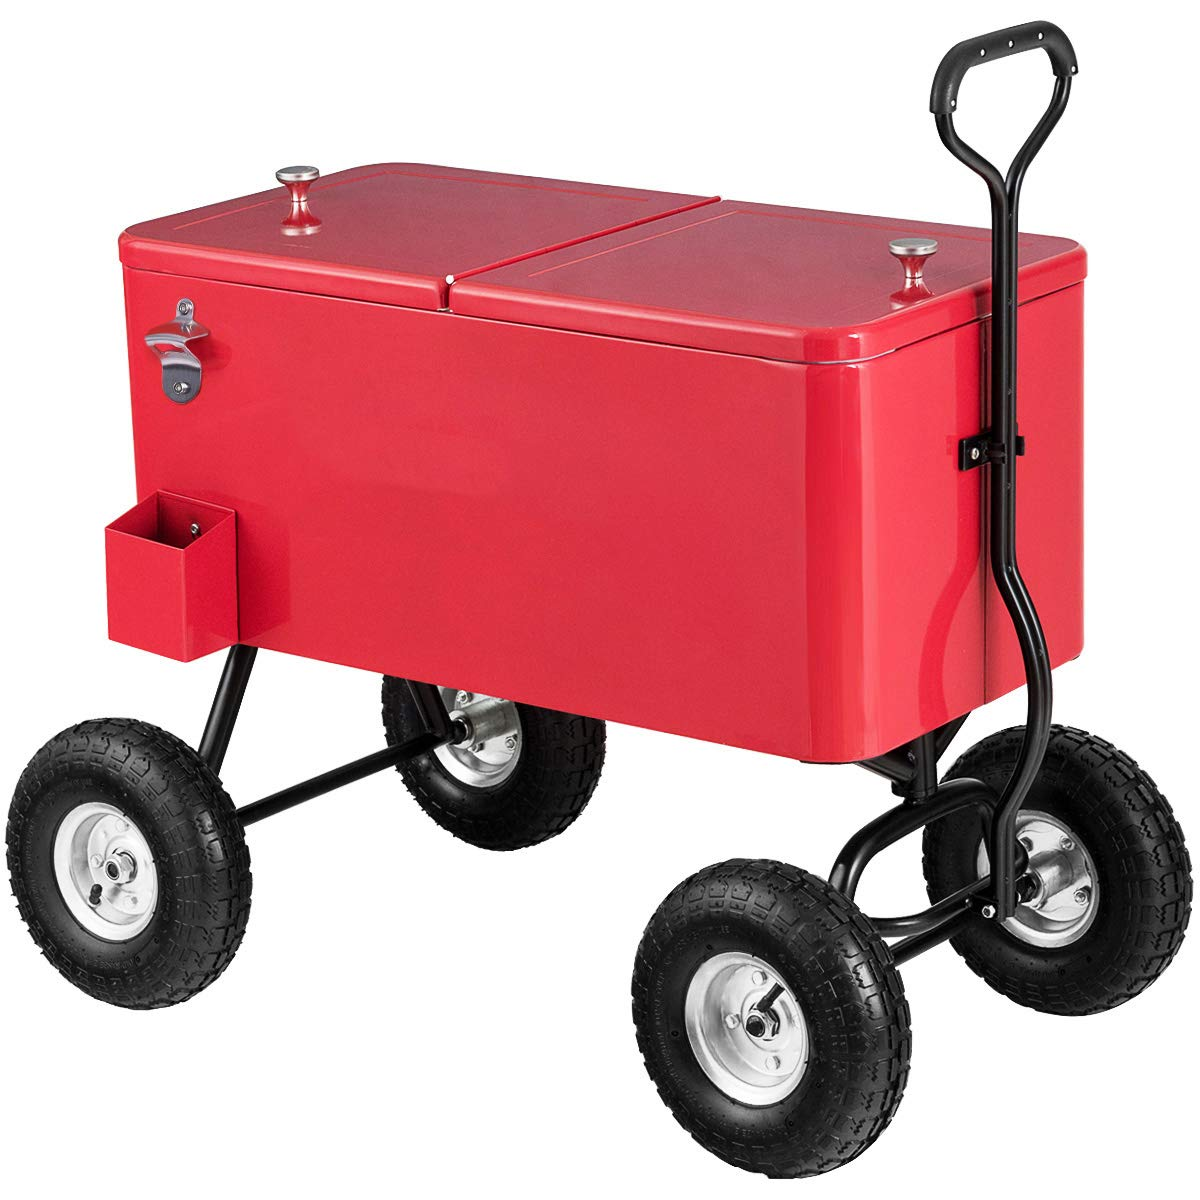 Giantex 80QT Wagon Cooler Rolling Cooler Ice, with Long Handle and 10'' All Terrain Wheels, Portable Rolling Bar Party Cold Drink Beverage Chest Patio Outdoor Cooling Cart, Red by Giantex (Image #1)